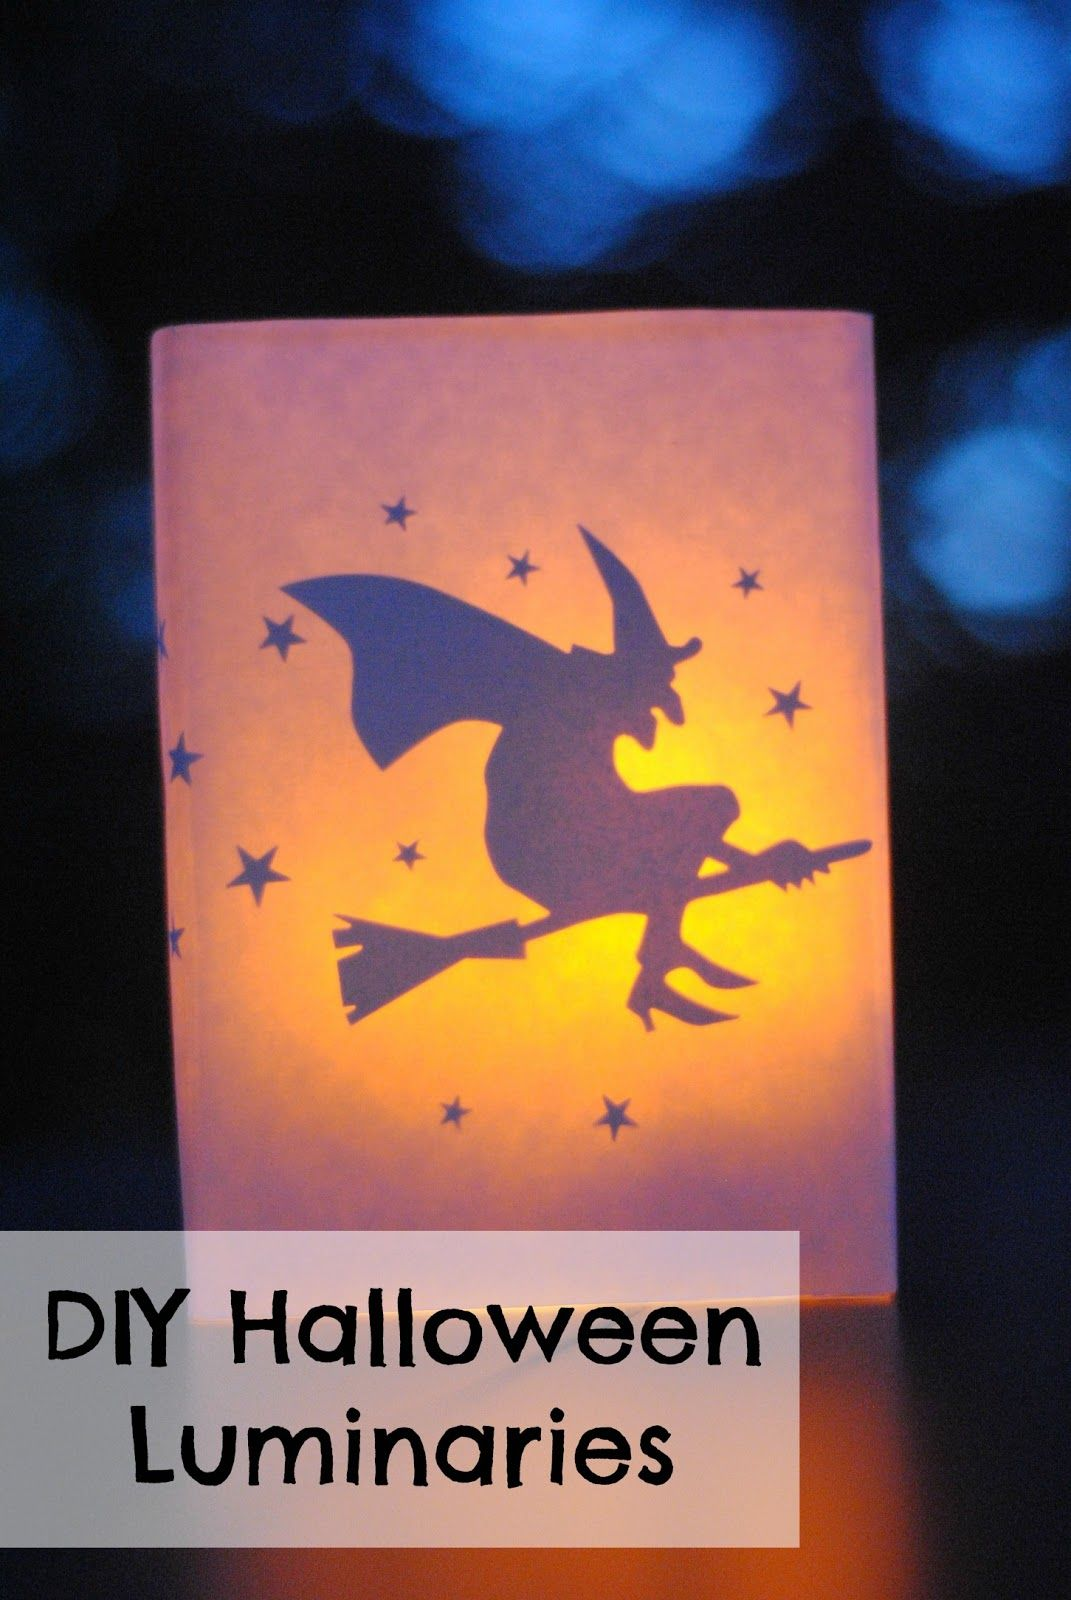 Making Lemonade DIY Halloween Luminaries Making Lemonade